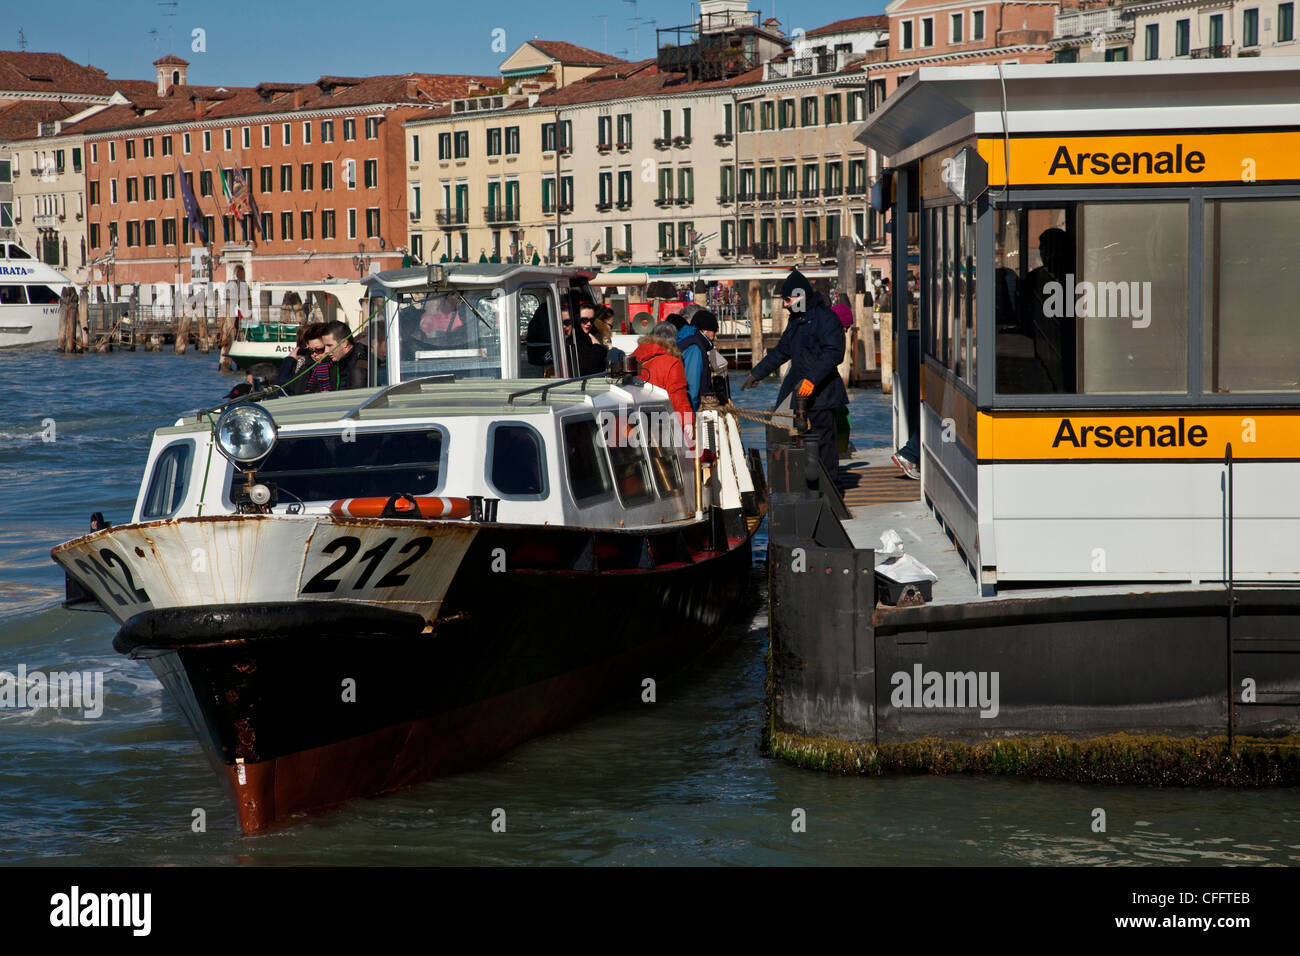 A Vaporetto (Water Bus) on The Lagoon, Venice, Italy - Stock Image